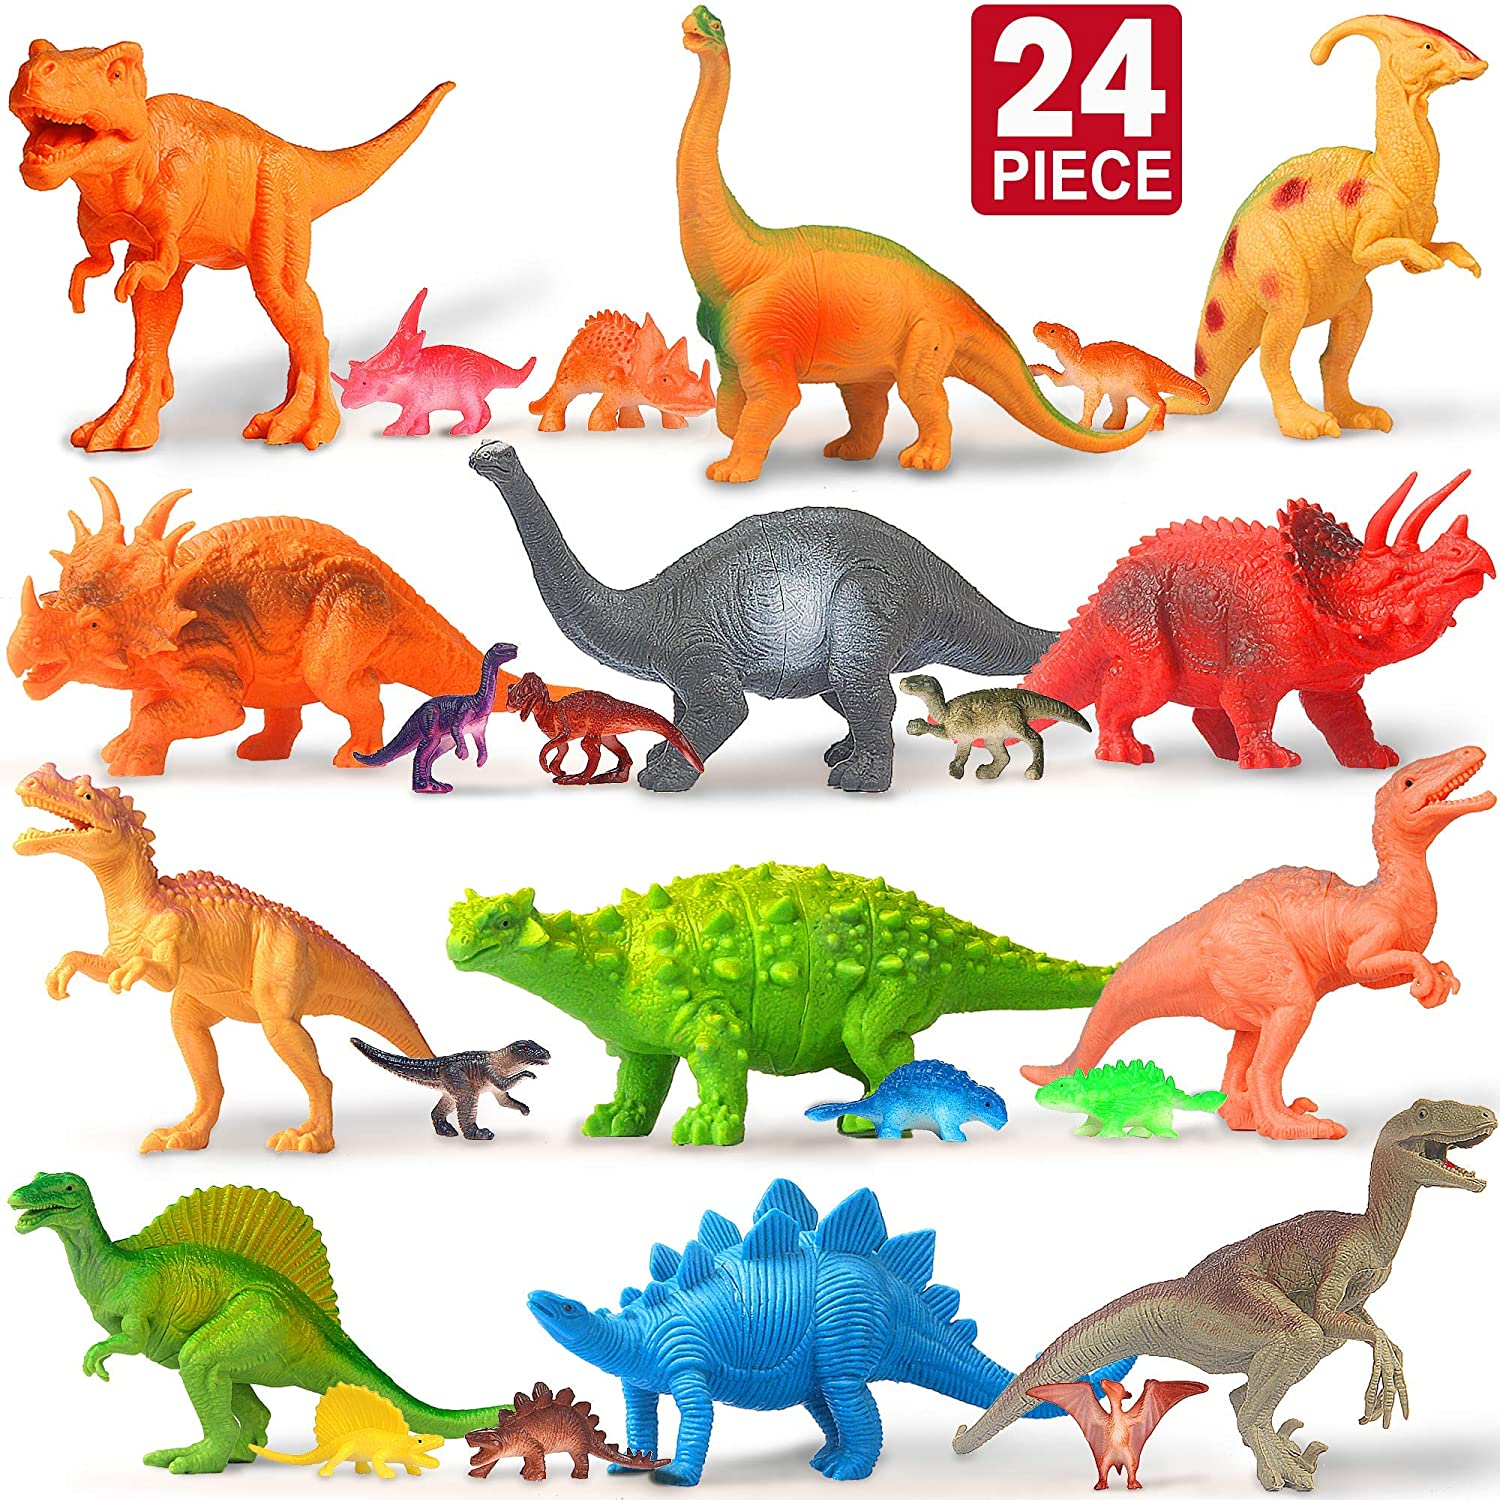 12 Large 12 Mini Toy Dinosaurs Set Figure Realistic Plastic Figurines Playset for Birthday School Playtime Dinosaur for Kids Boys Girls Age 3 Feroxo Dinosaur Toys for Kids Party Supplies Year